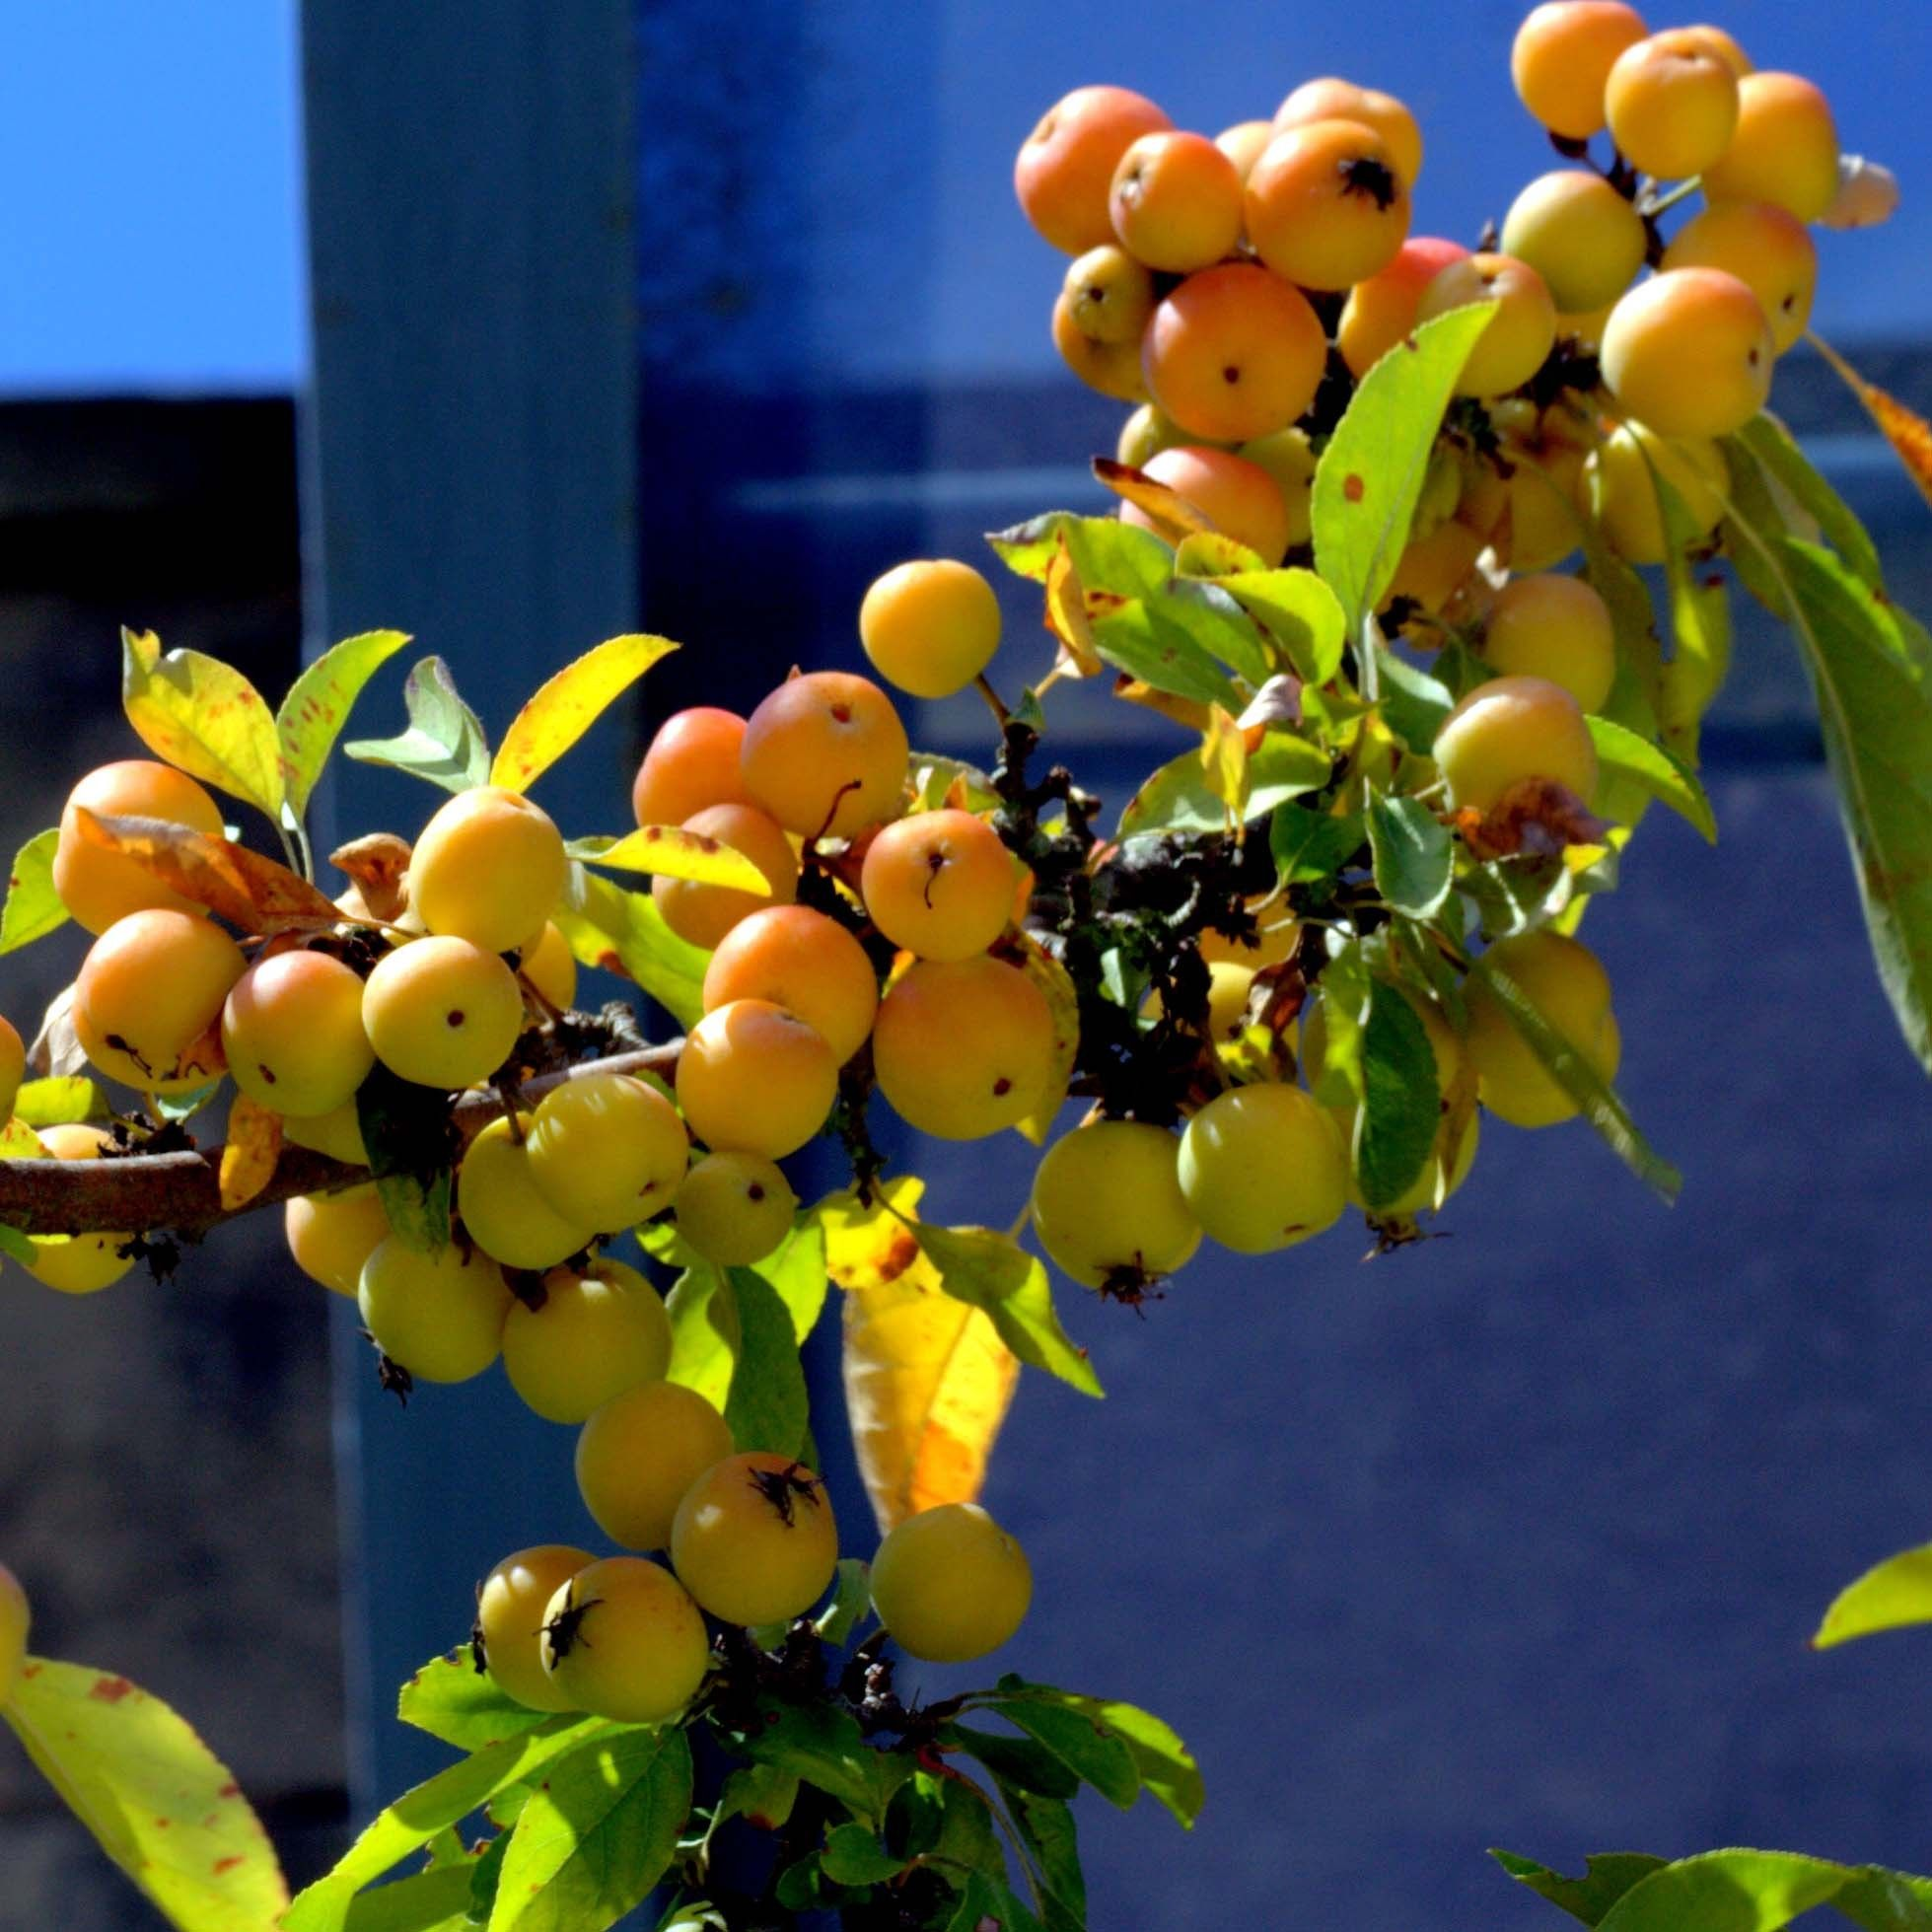 Pommier d'ornement - Malus Golden Hornet en pot de 7,5/10L 150/+